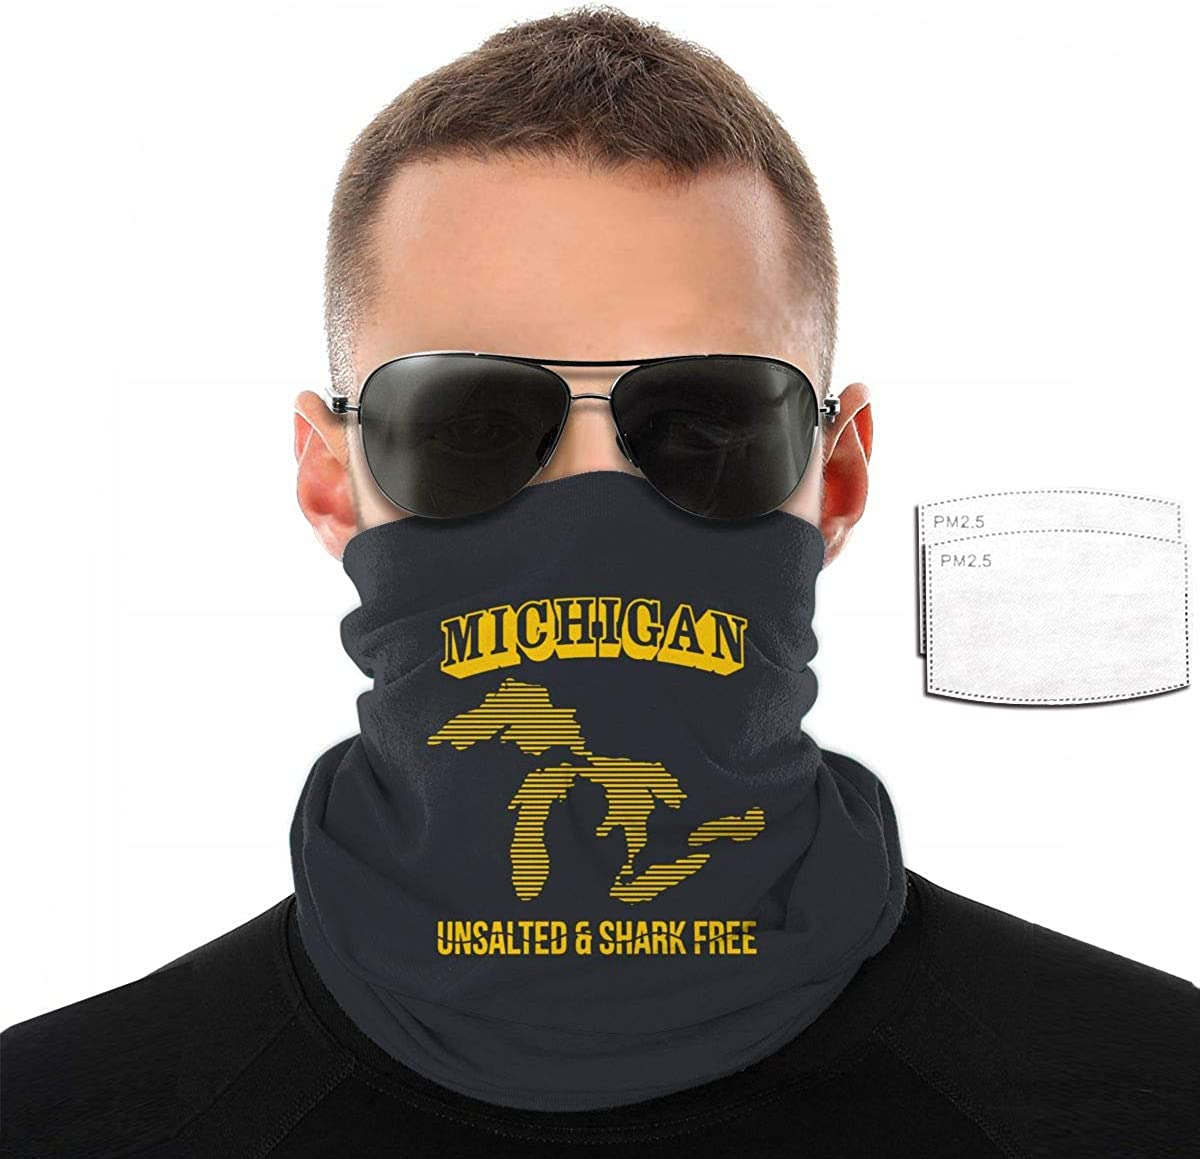 Michigan Unsalted Shark Free Mans Womens Dustproof Mouth Mask Breathable Scarf with Filter